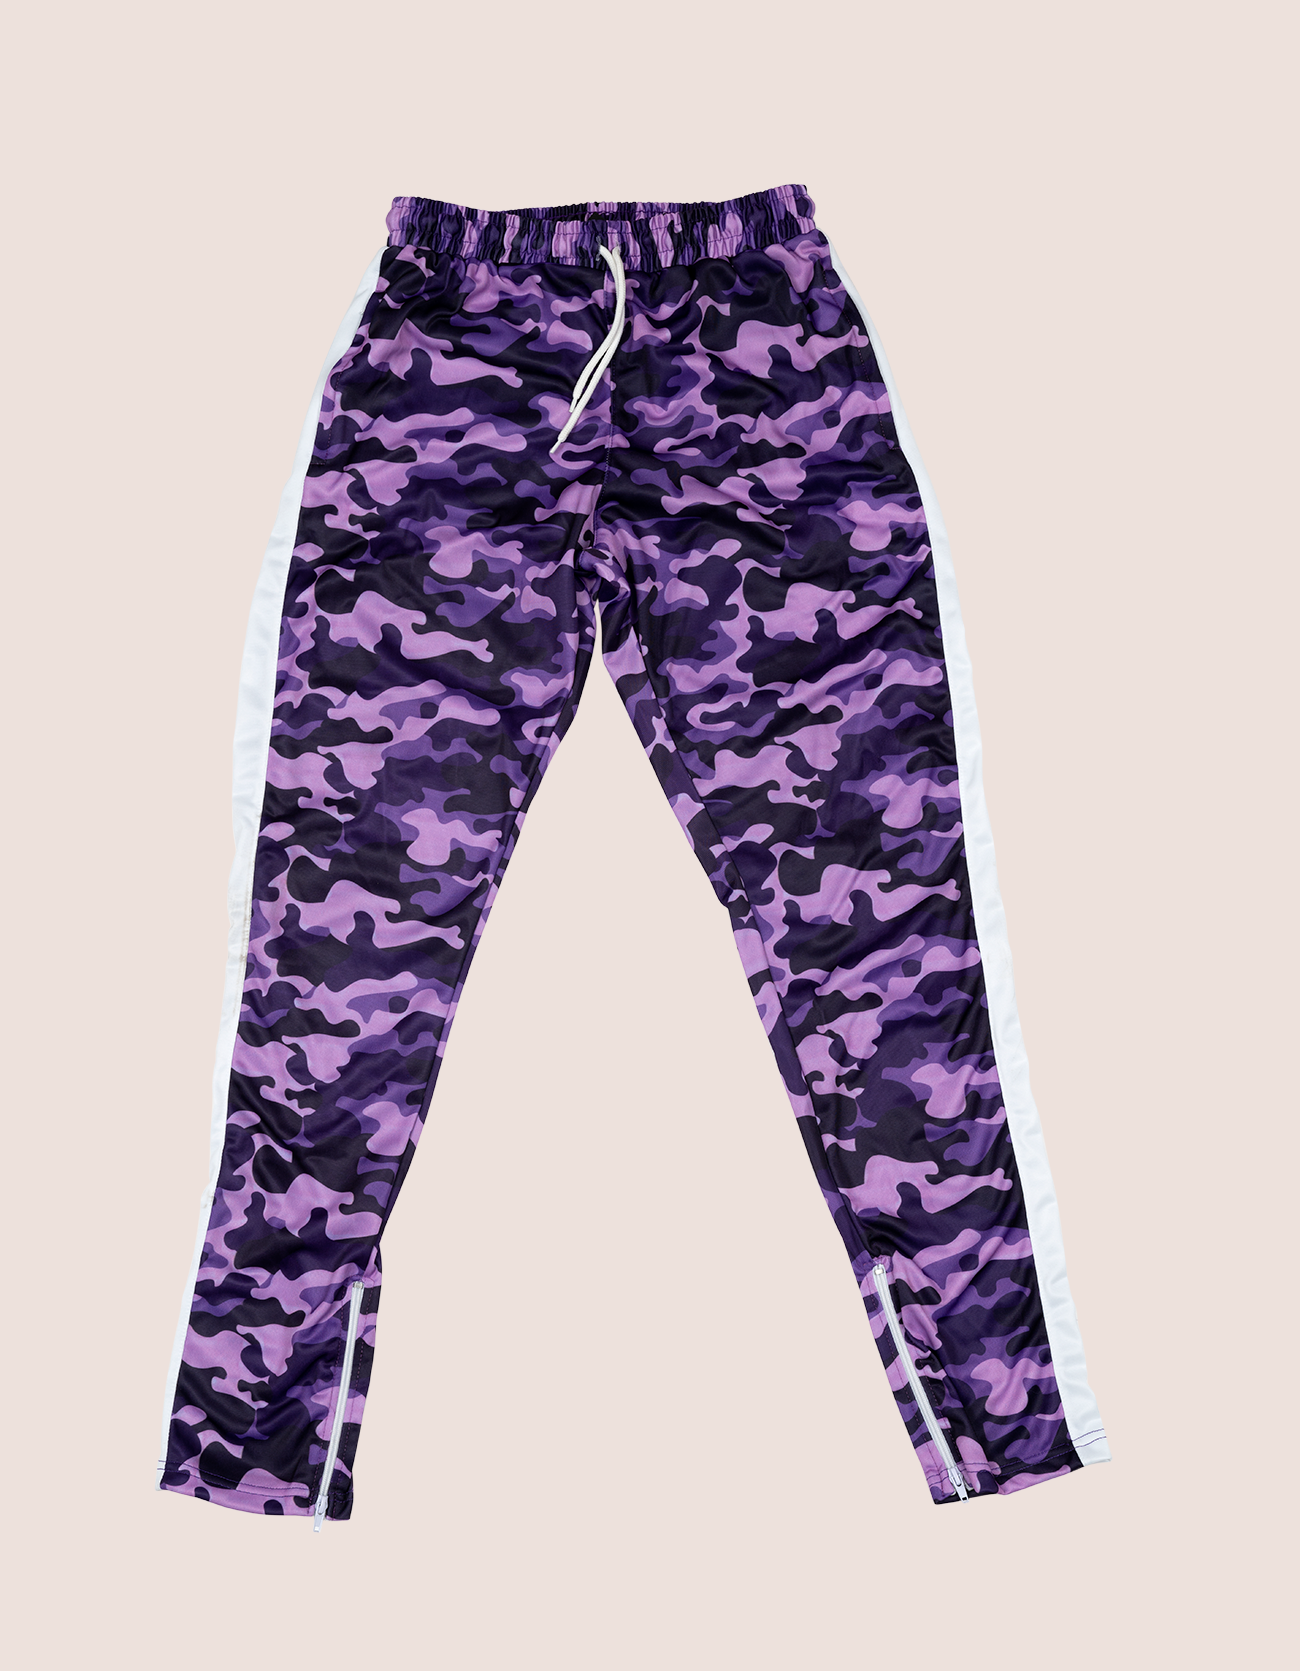 PURPLE CAMO TRACKSUIT